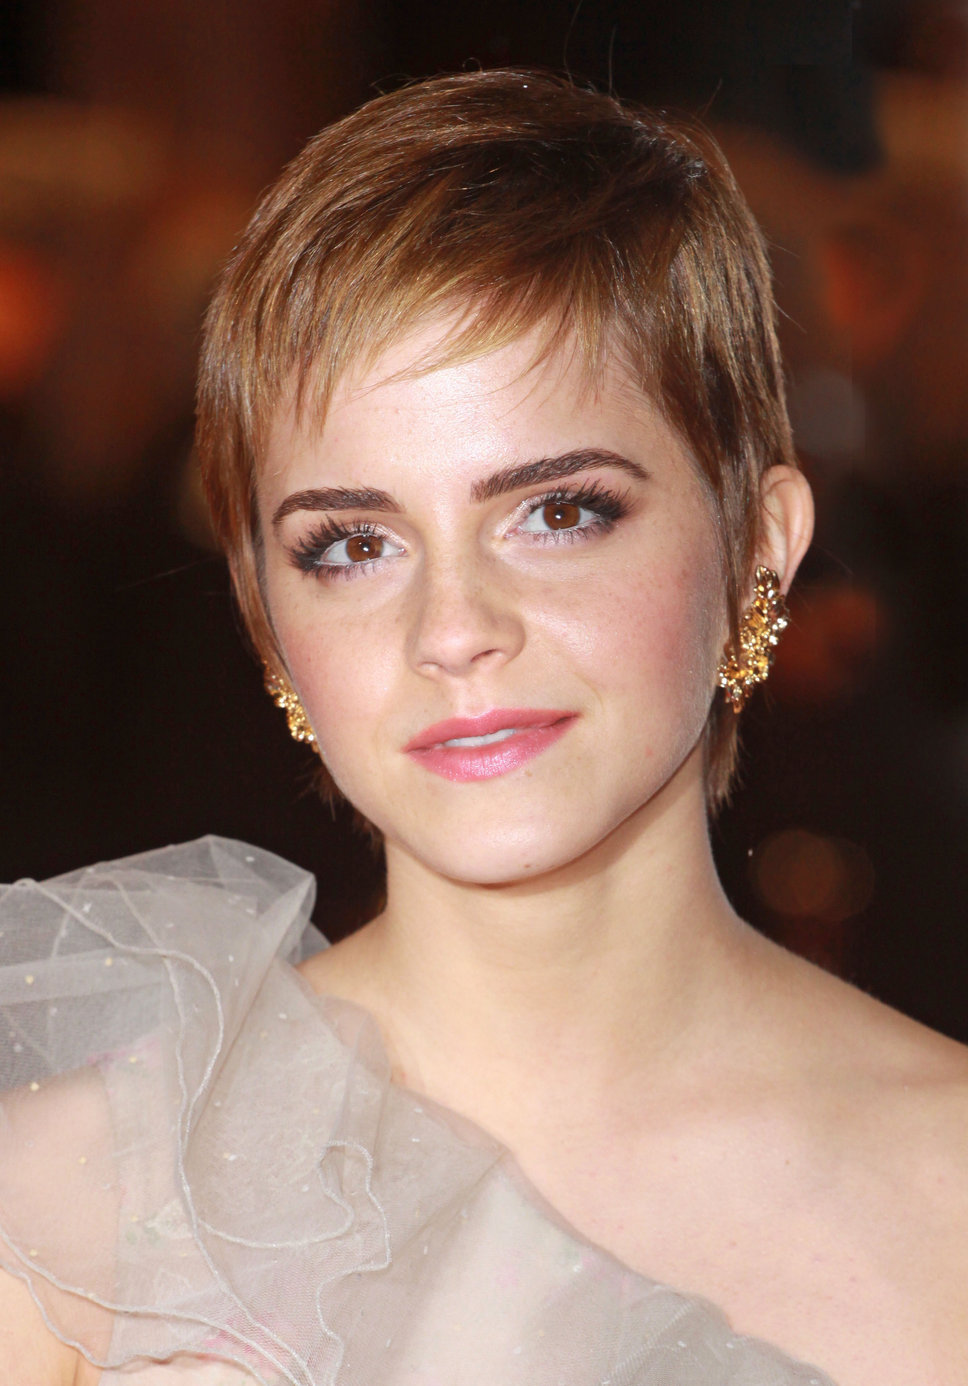 Emma Watson Soft Pixie Hair Cut Wispy Bangs Women